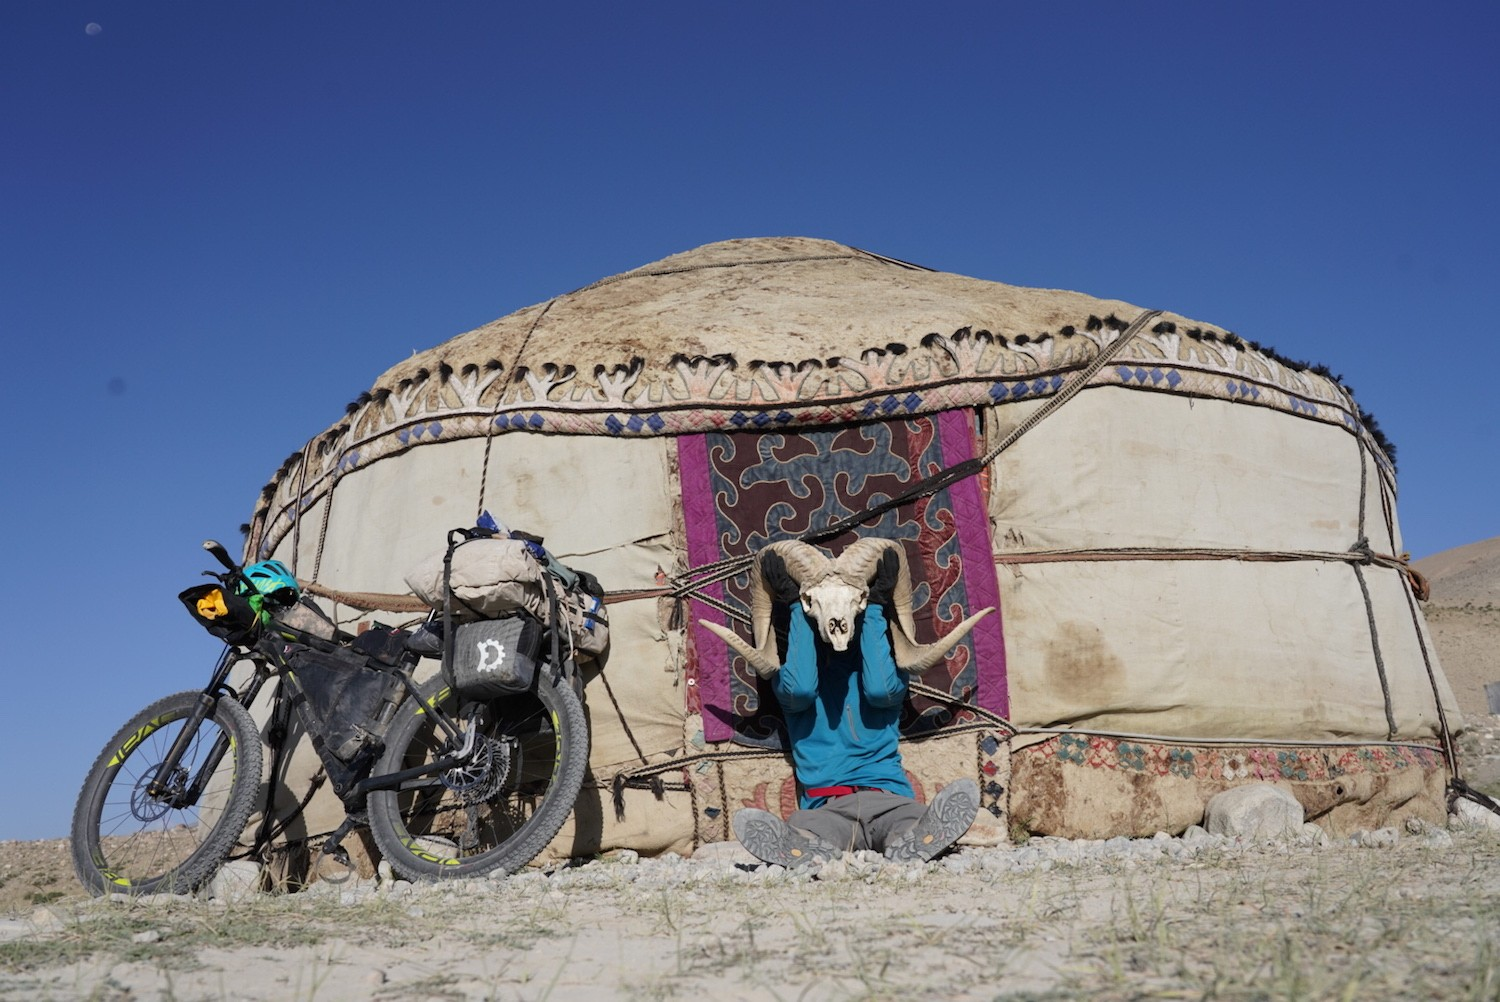 Tajikiwhere? A solo bikerafting odyssey to Tajikistan, by Steve Fassbinder, on the Revelate Designs blog.